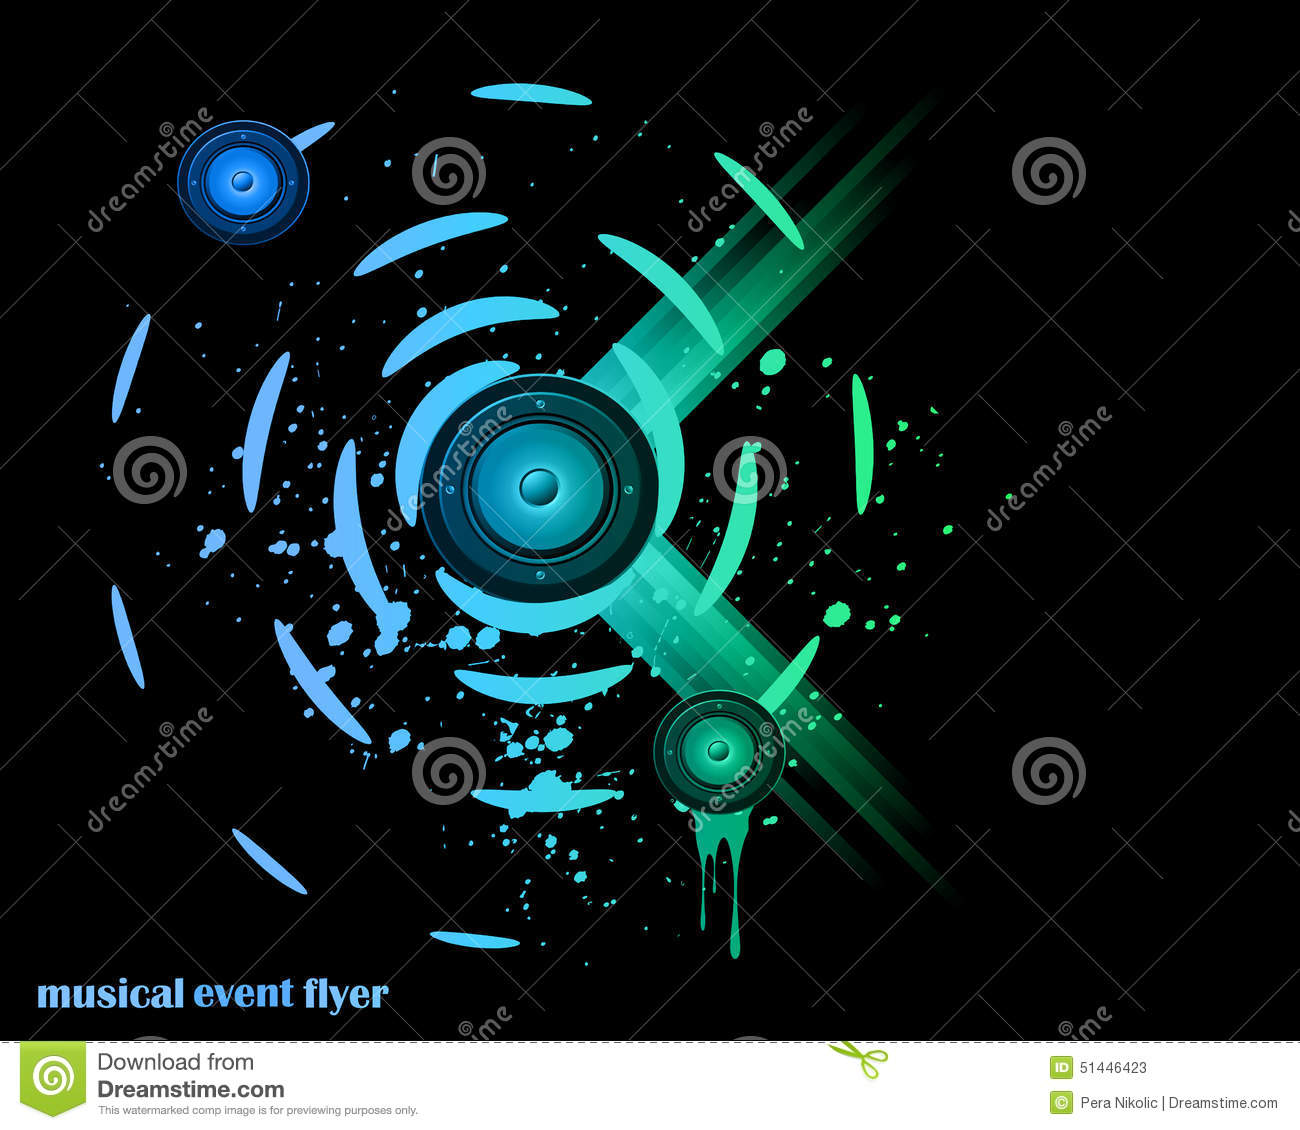 Poster design for technical events - Poster Design For Technical Events Royalty Free Vector